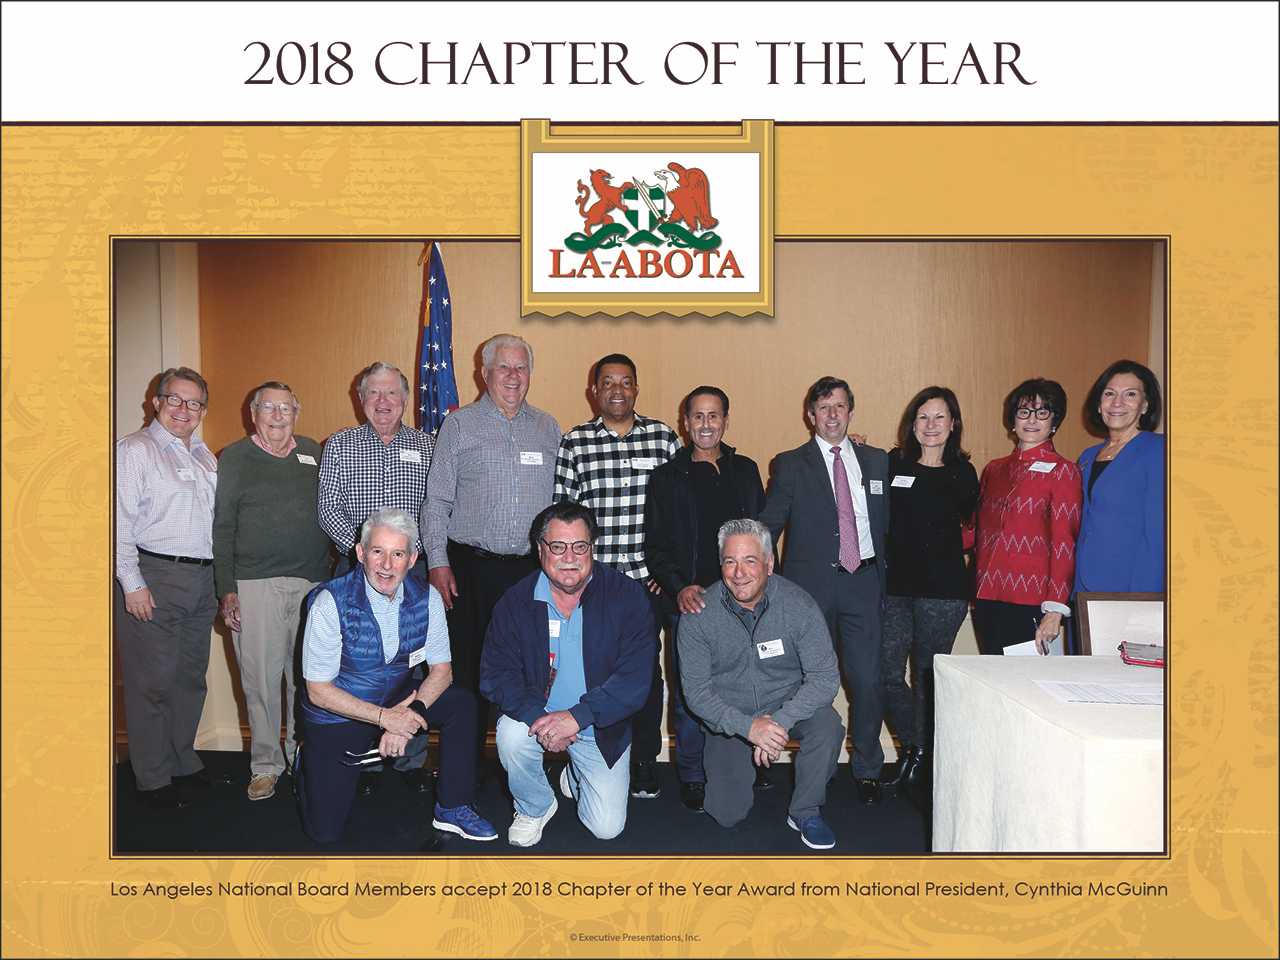 ABOTA CHAPTER OF THE YEAR 2018!